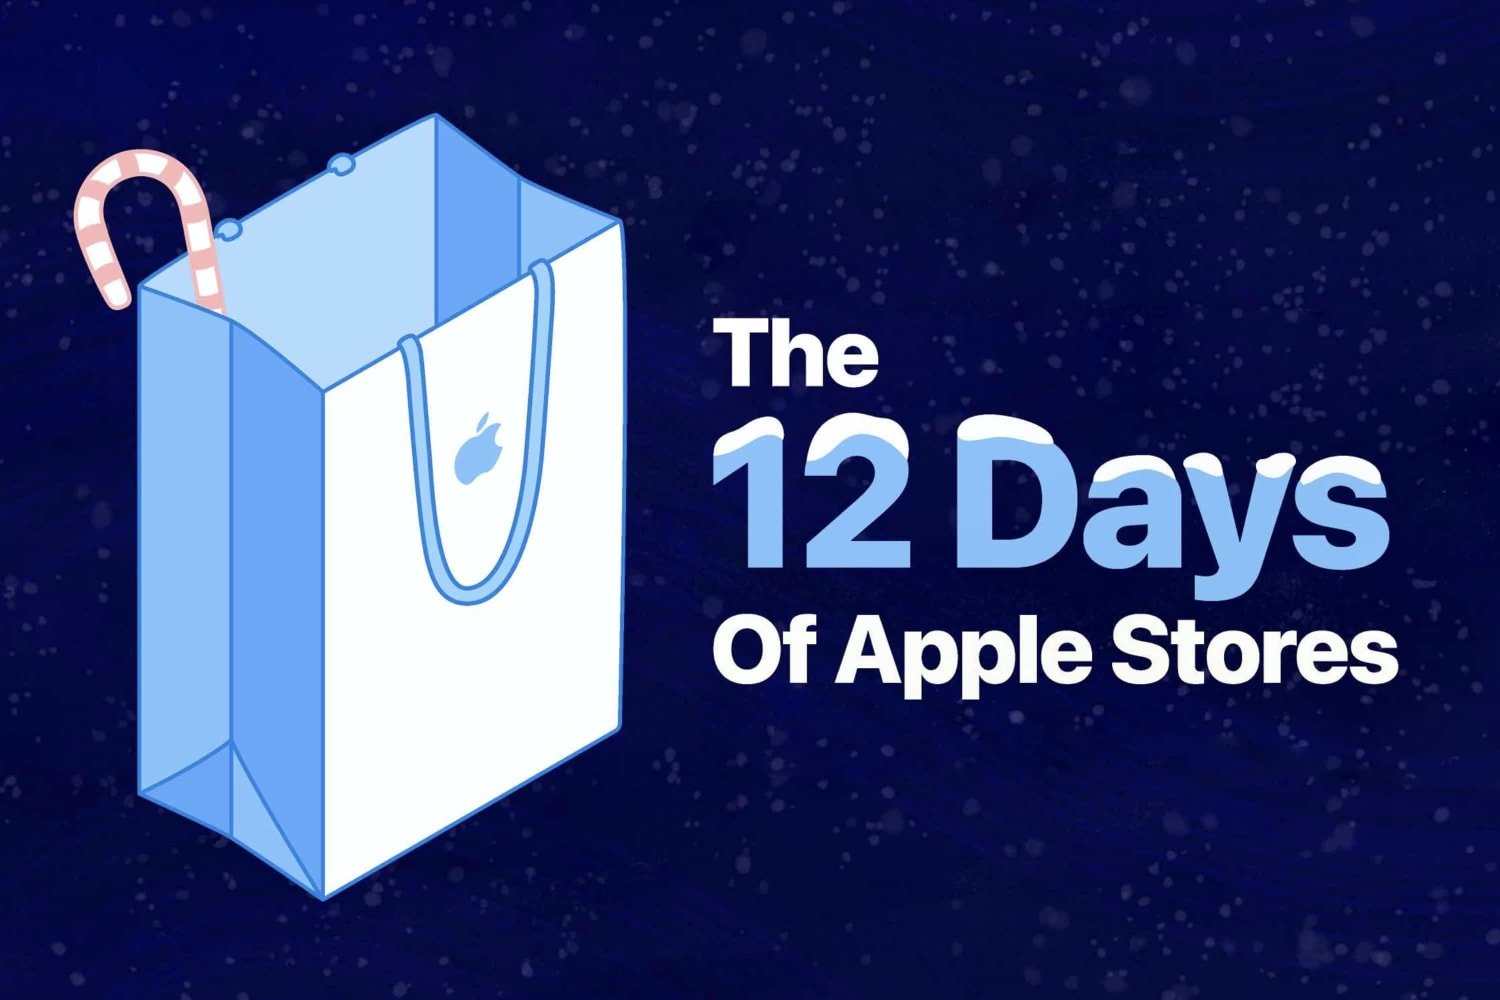 get-festive-and-creative-with-the-12-days-of-apple-stores-20201211-1